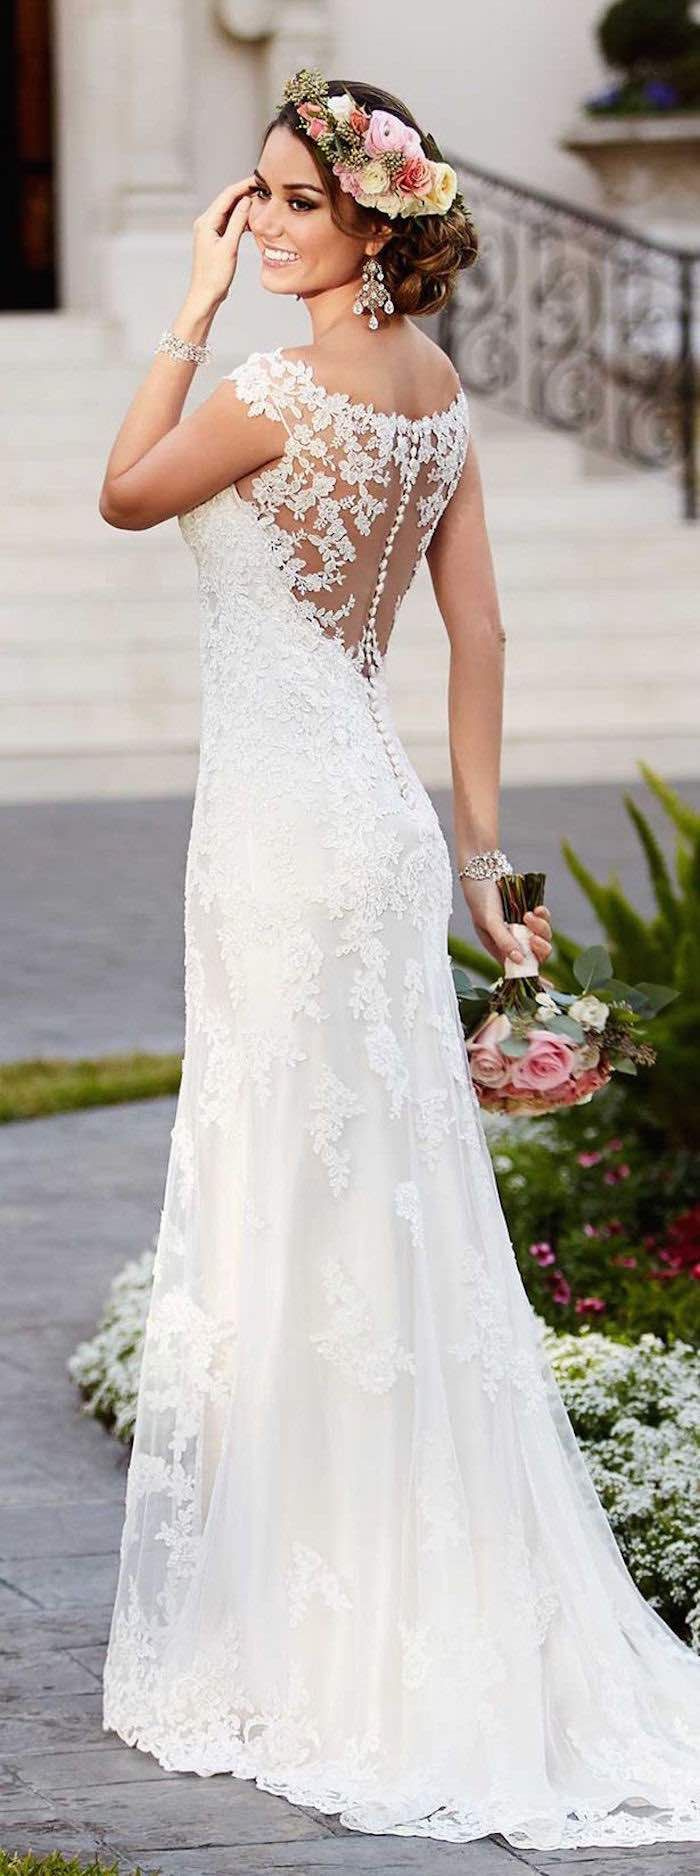 southern wedding dresses summer dresses wedding Gorgeous Stella York lace wedding dress looks amazing for this summer floral crown Photo via